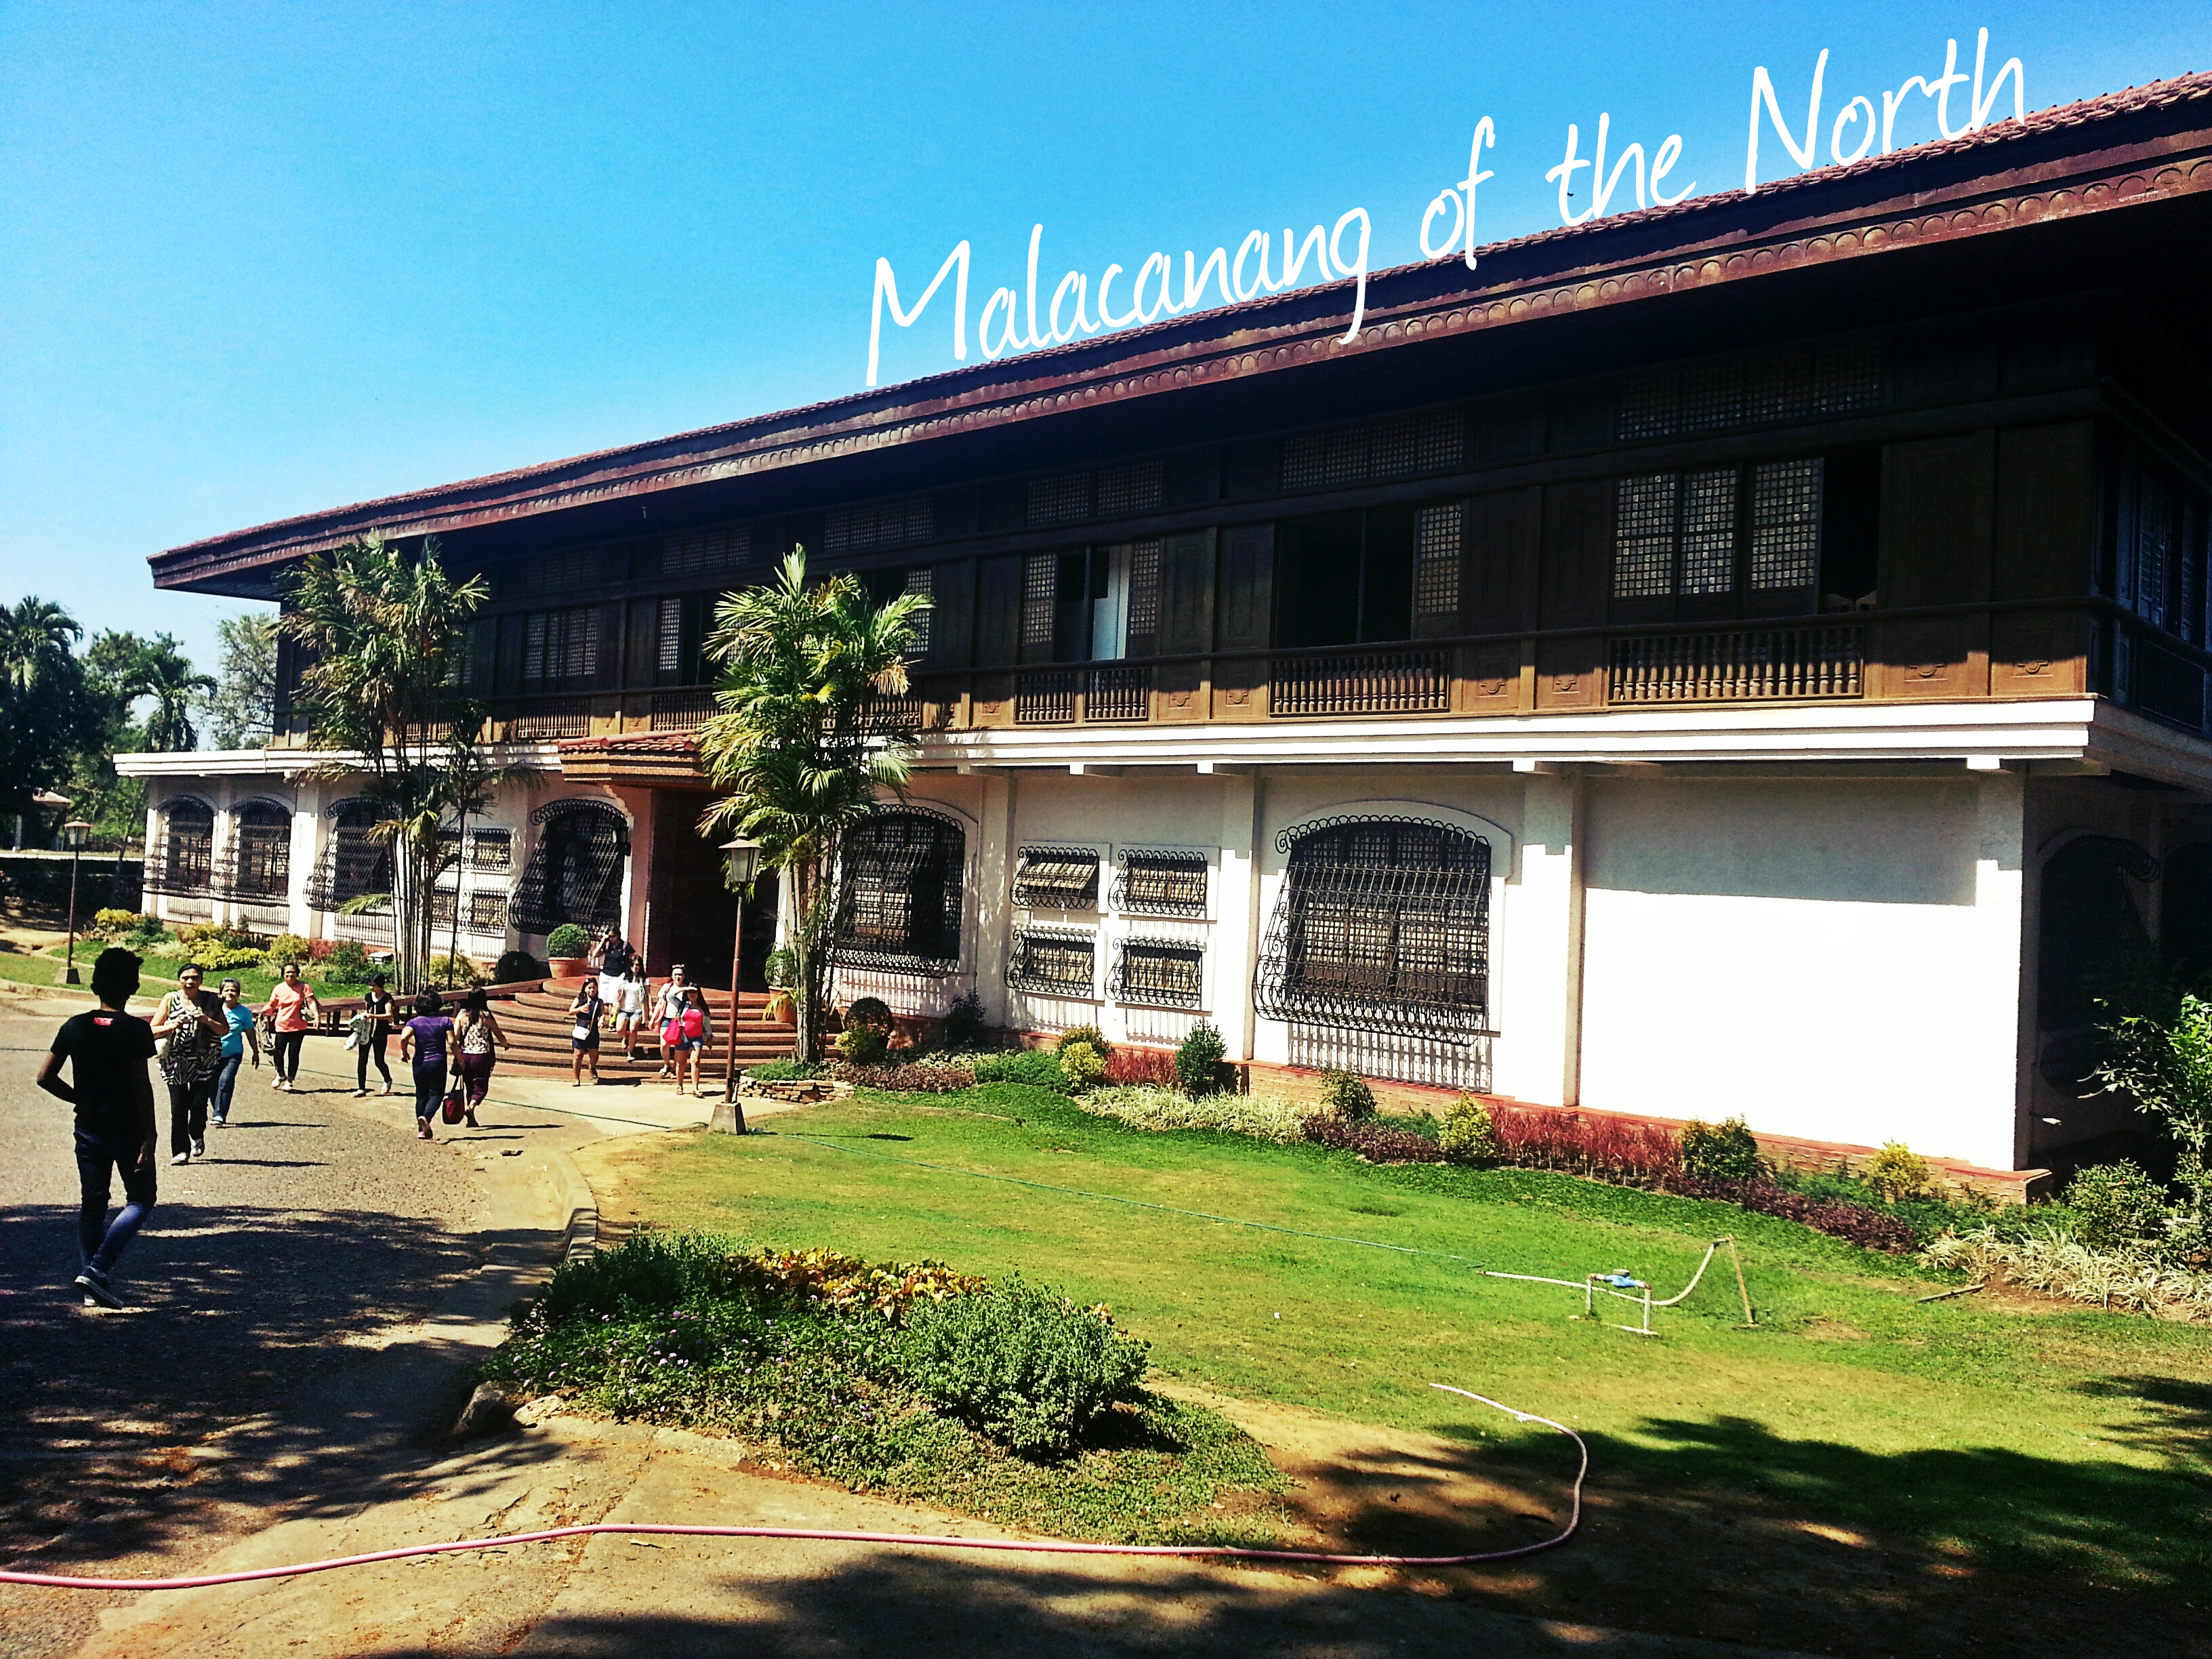 Malacañang of the North Laoag, Marcos | Lazy Black Cat